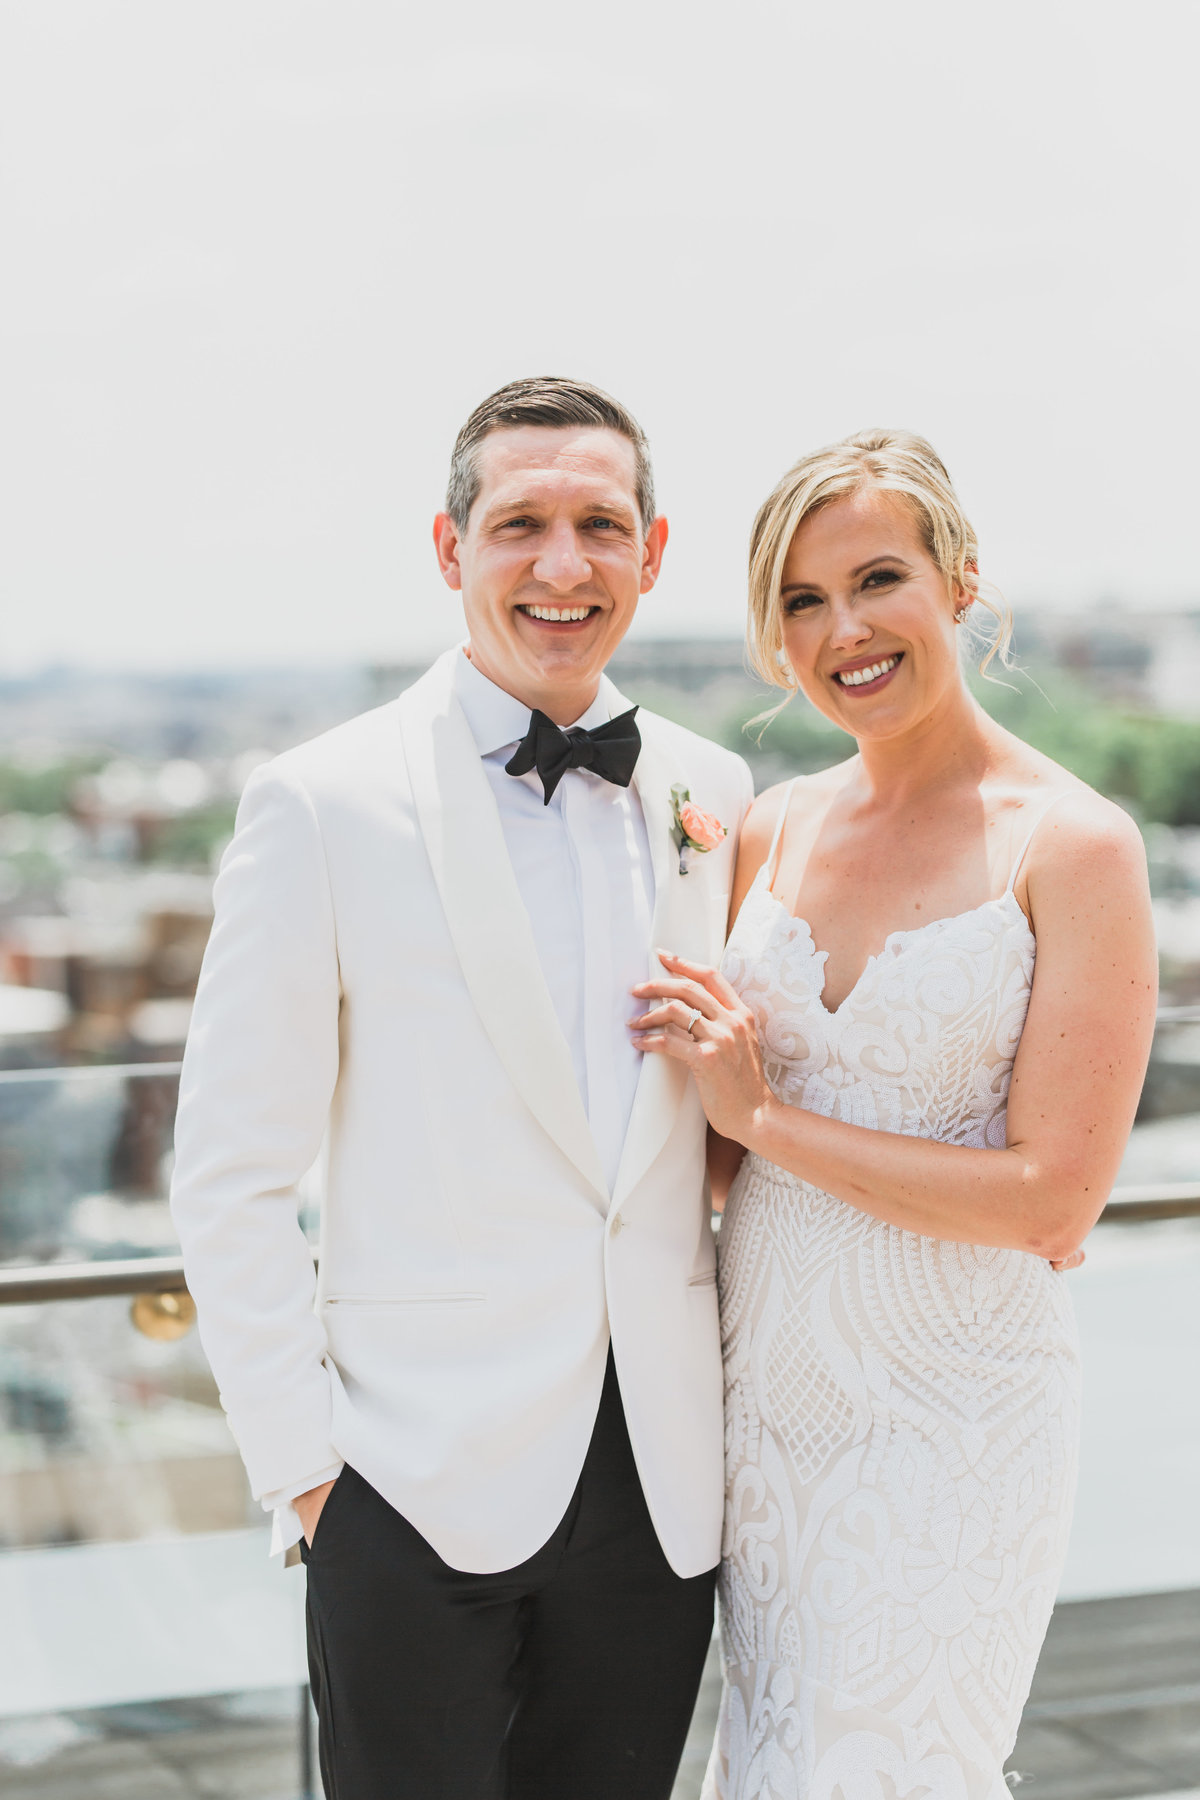 Washington D.C. Wedding Photographer - M Harris Studios-208